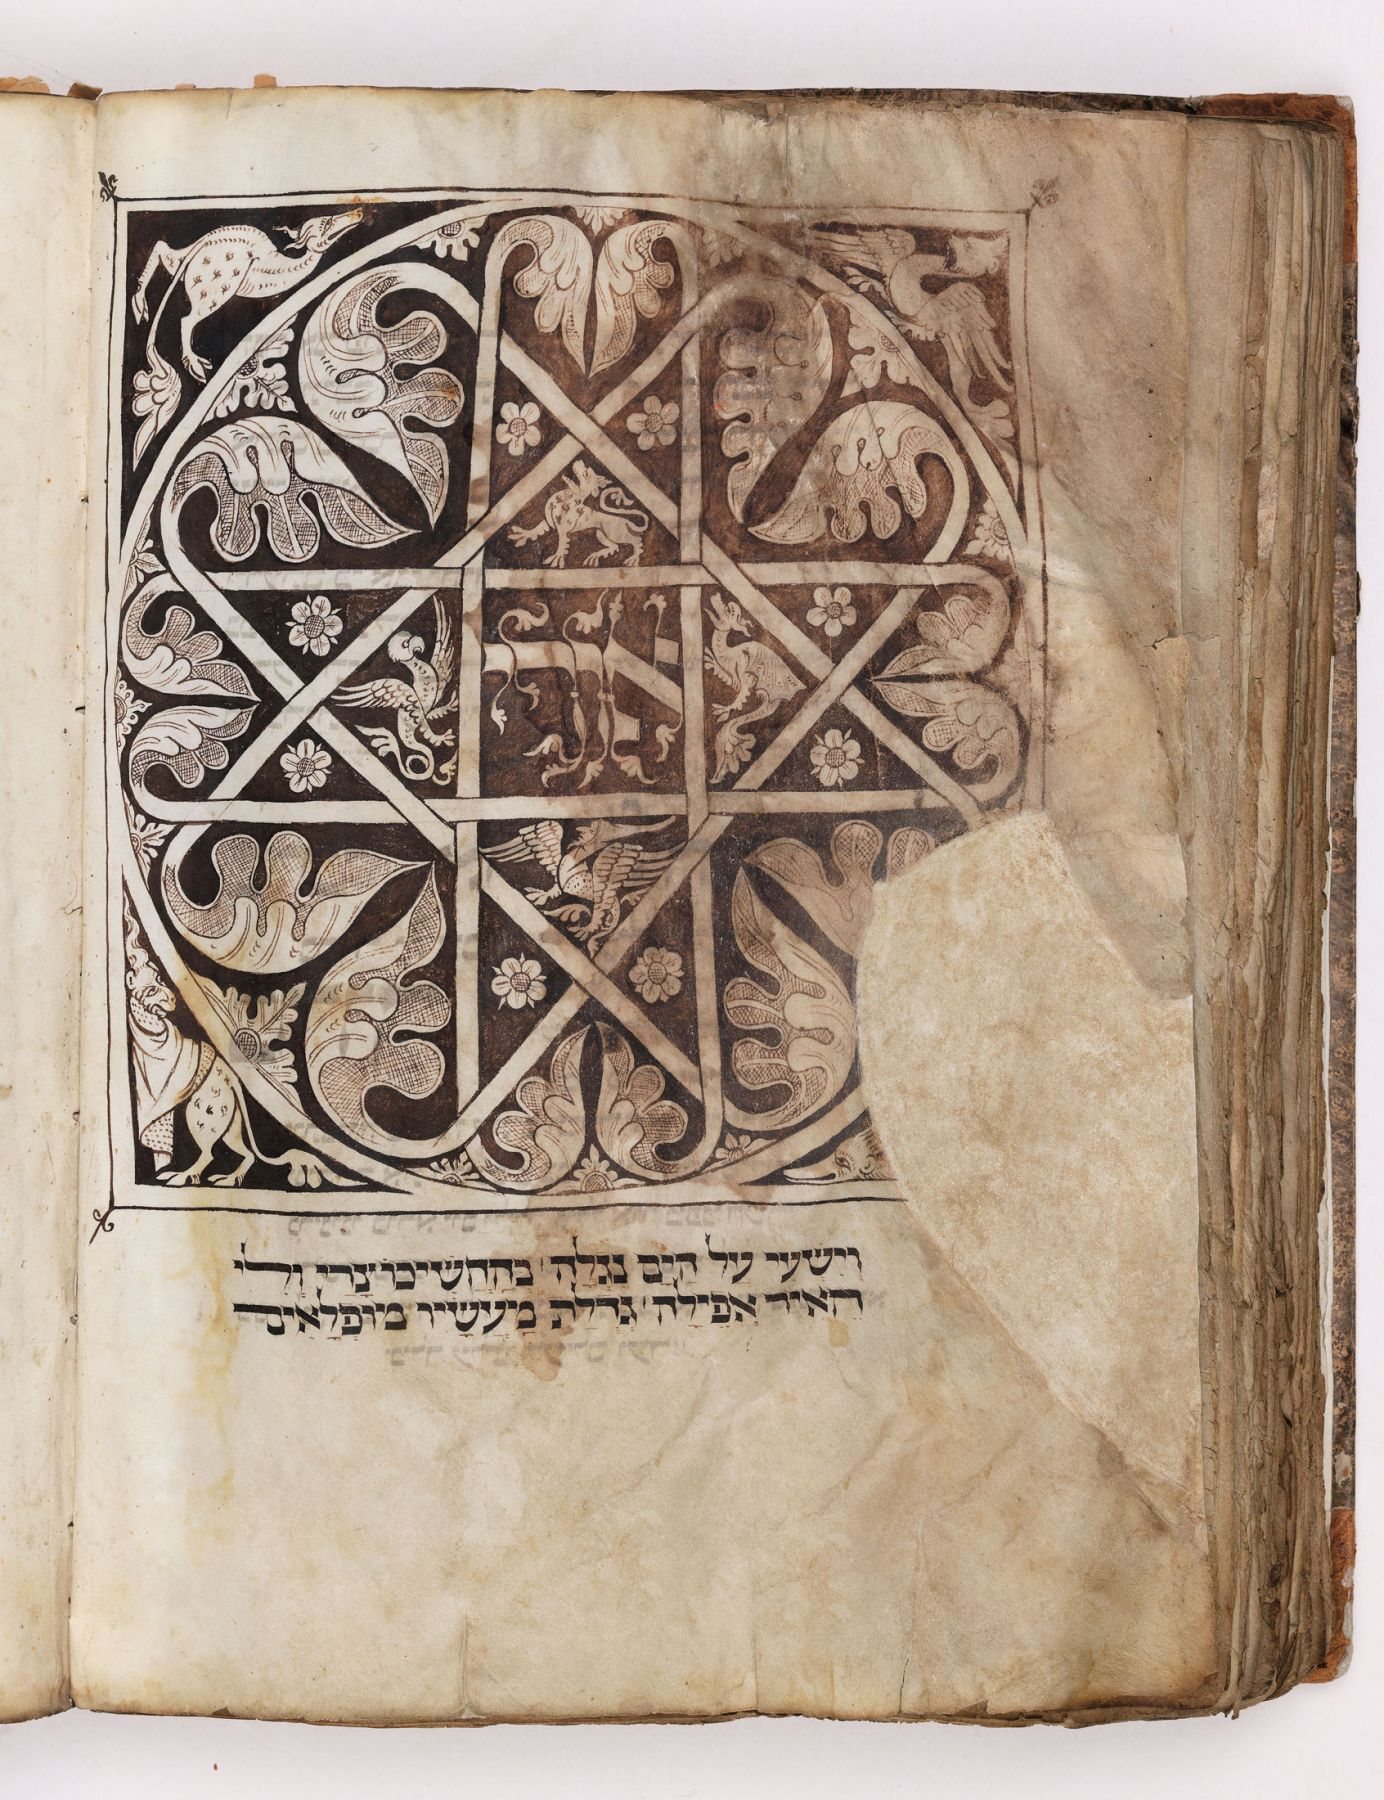 The Montefiore Mainz Mahzor (detail), Mahzor for special Shabbot, Passover, and Shavuot according to the Rie of Mainz